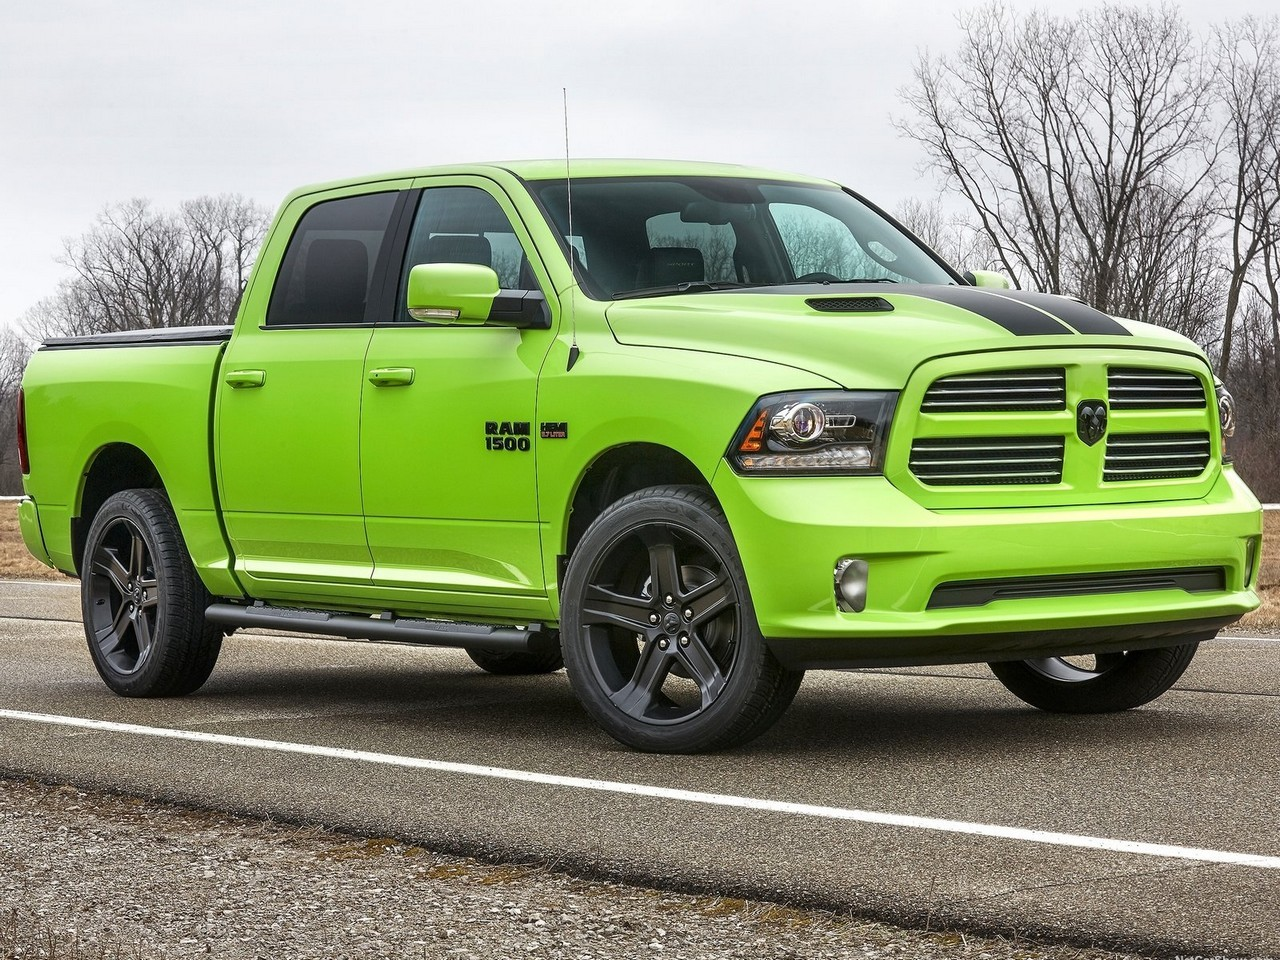 dodge ram 1500 sublime sport 2017 sport et rebel bleu photoscar. Black Bedroom Furniture Sets. Home Design Ideas